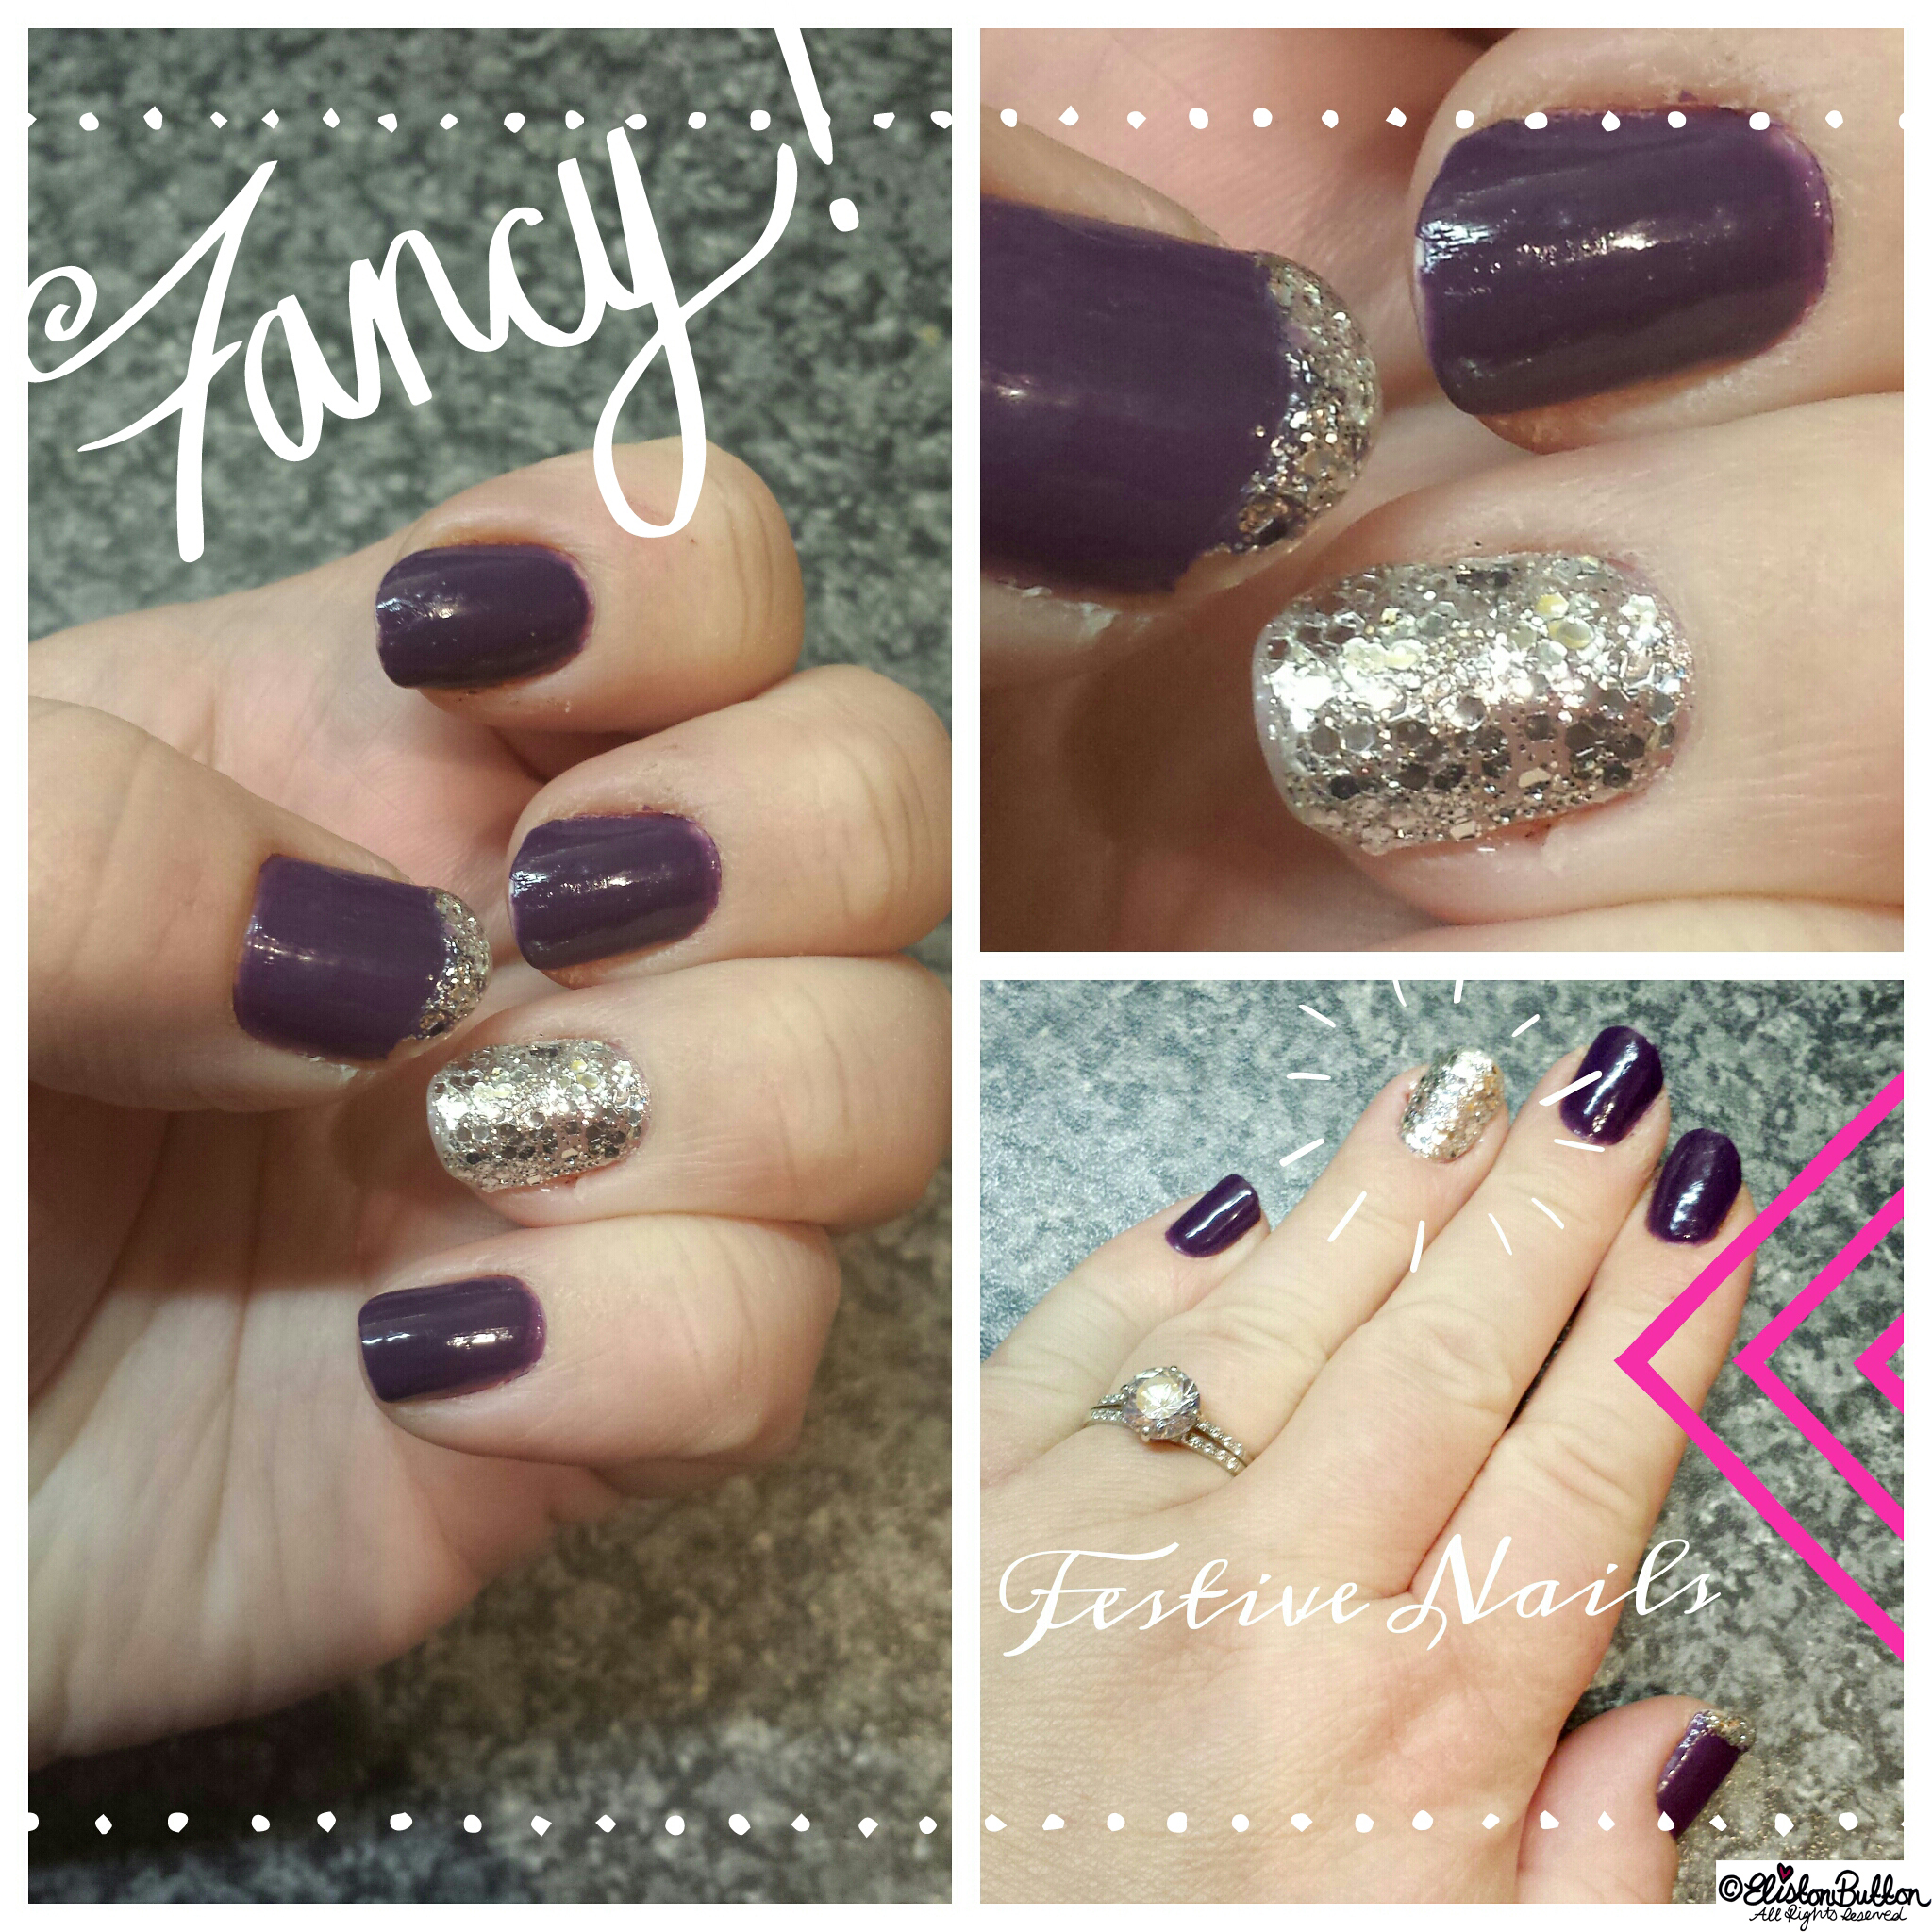 Fancy Purple Nails with Silver Glitter Accent Nail - Hello Winter... at www.elistonbutton.com - Eliston Button - That Crafty Kid – Art, Design, Craft & Adventure.